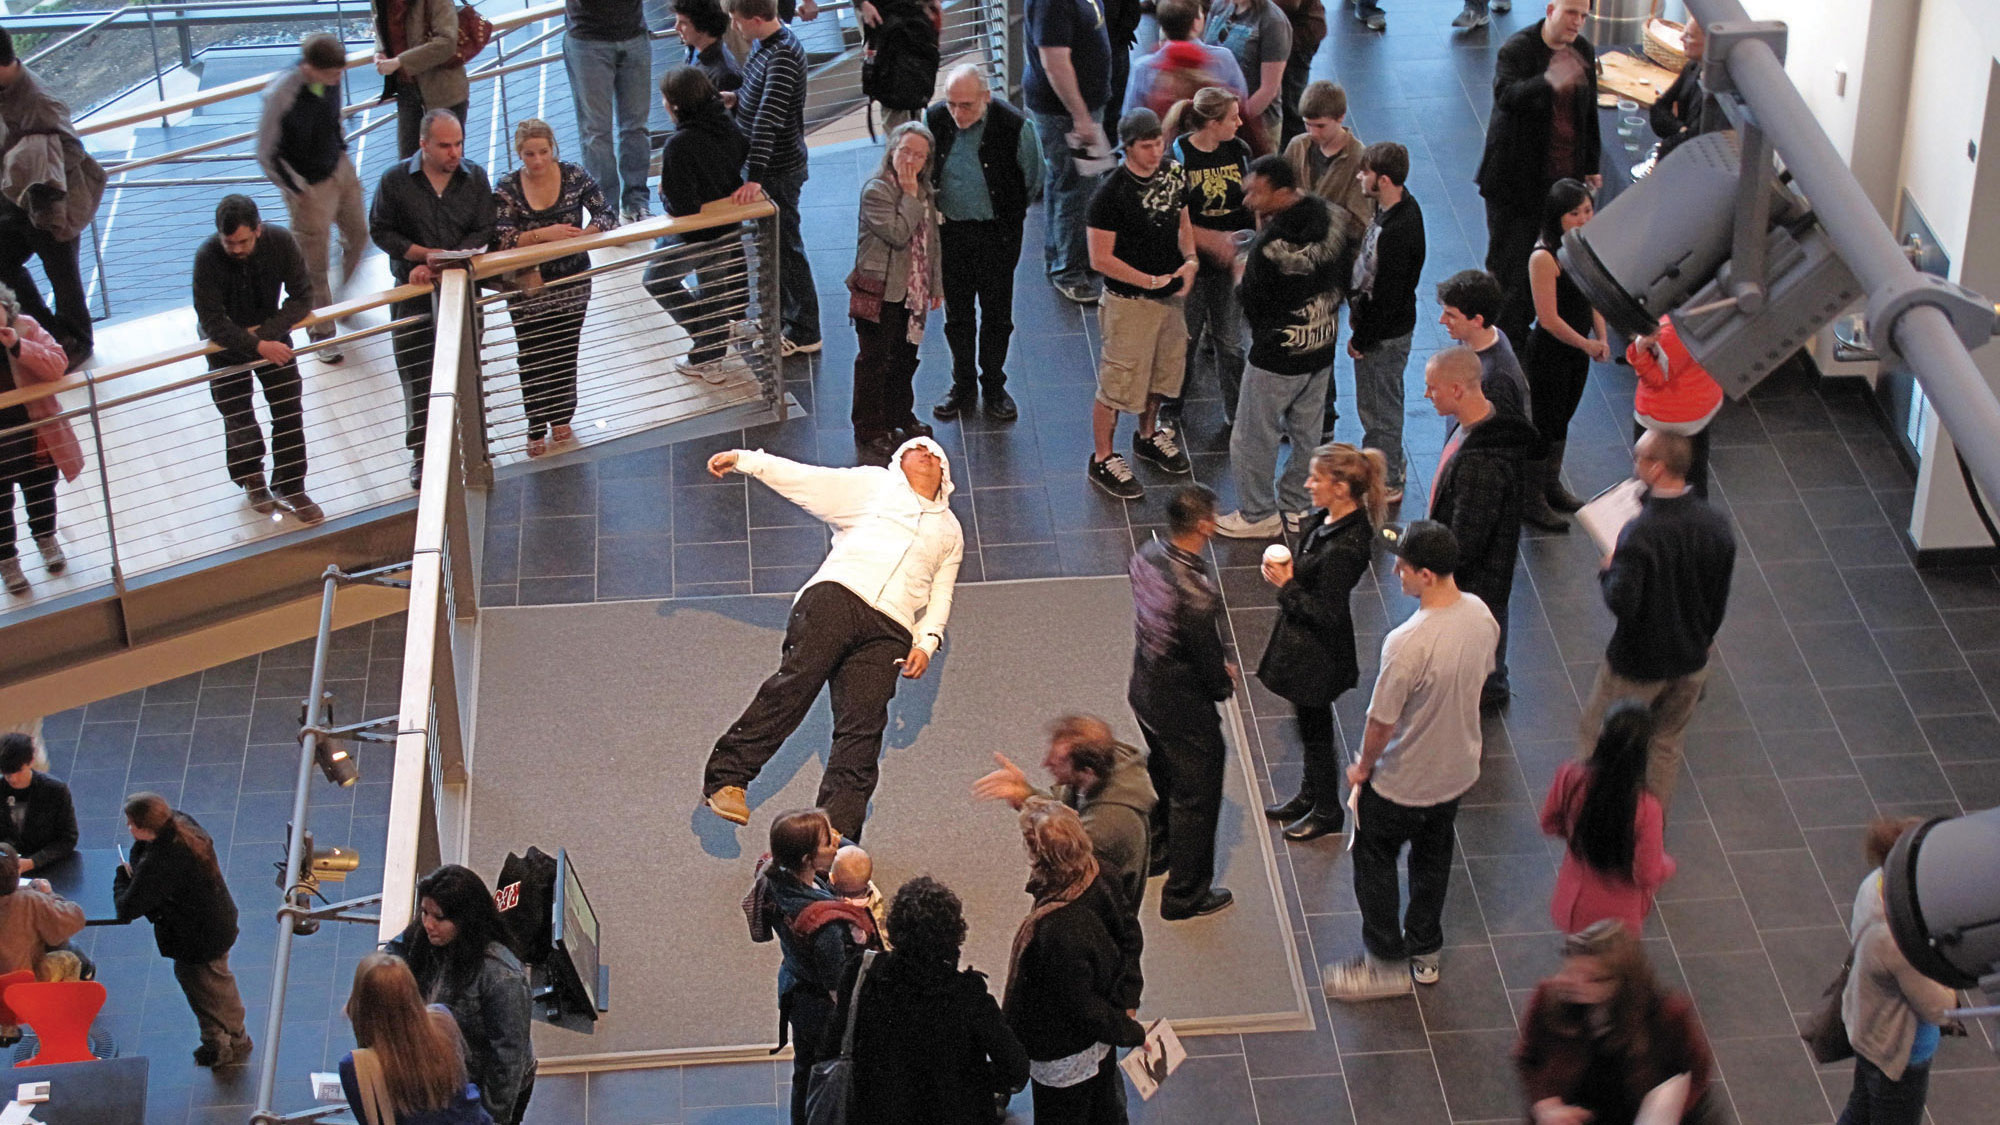 people in the mezzanine during an exhibition opening